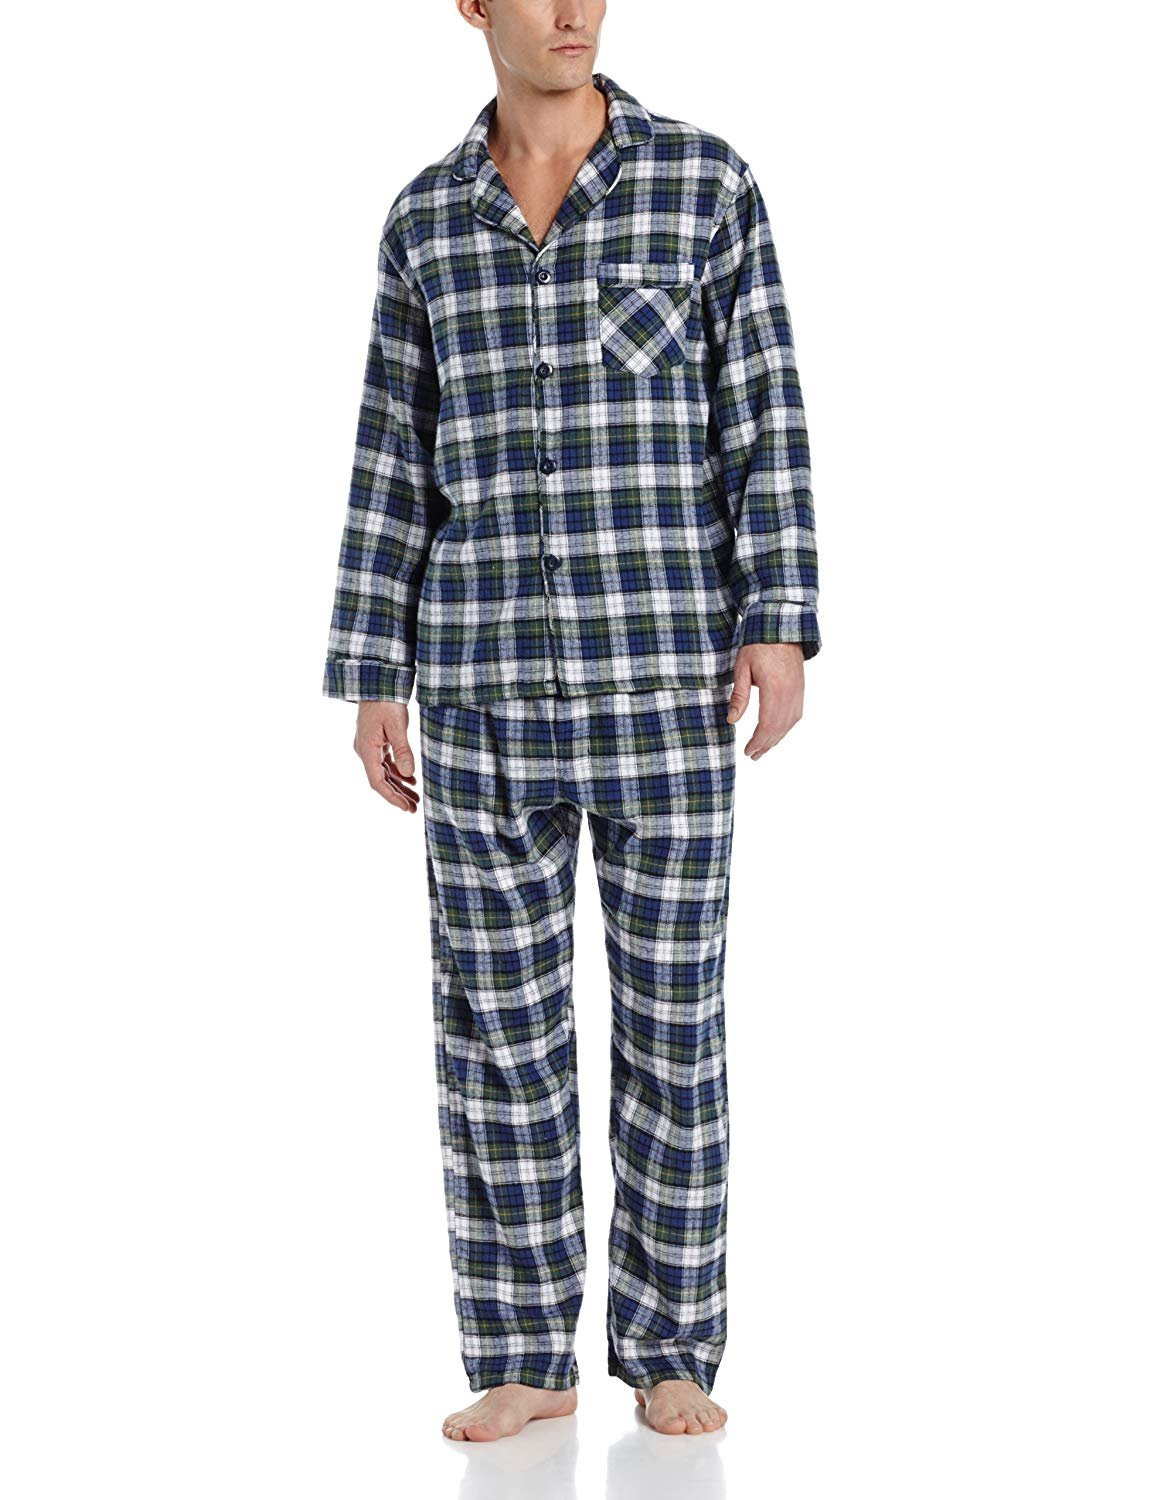 Hanes Men/'s Flannel Pajama Set